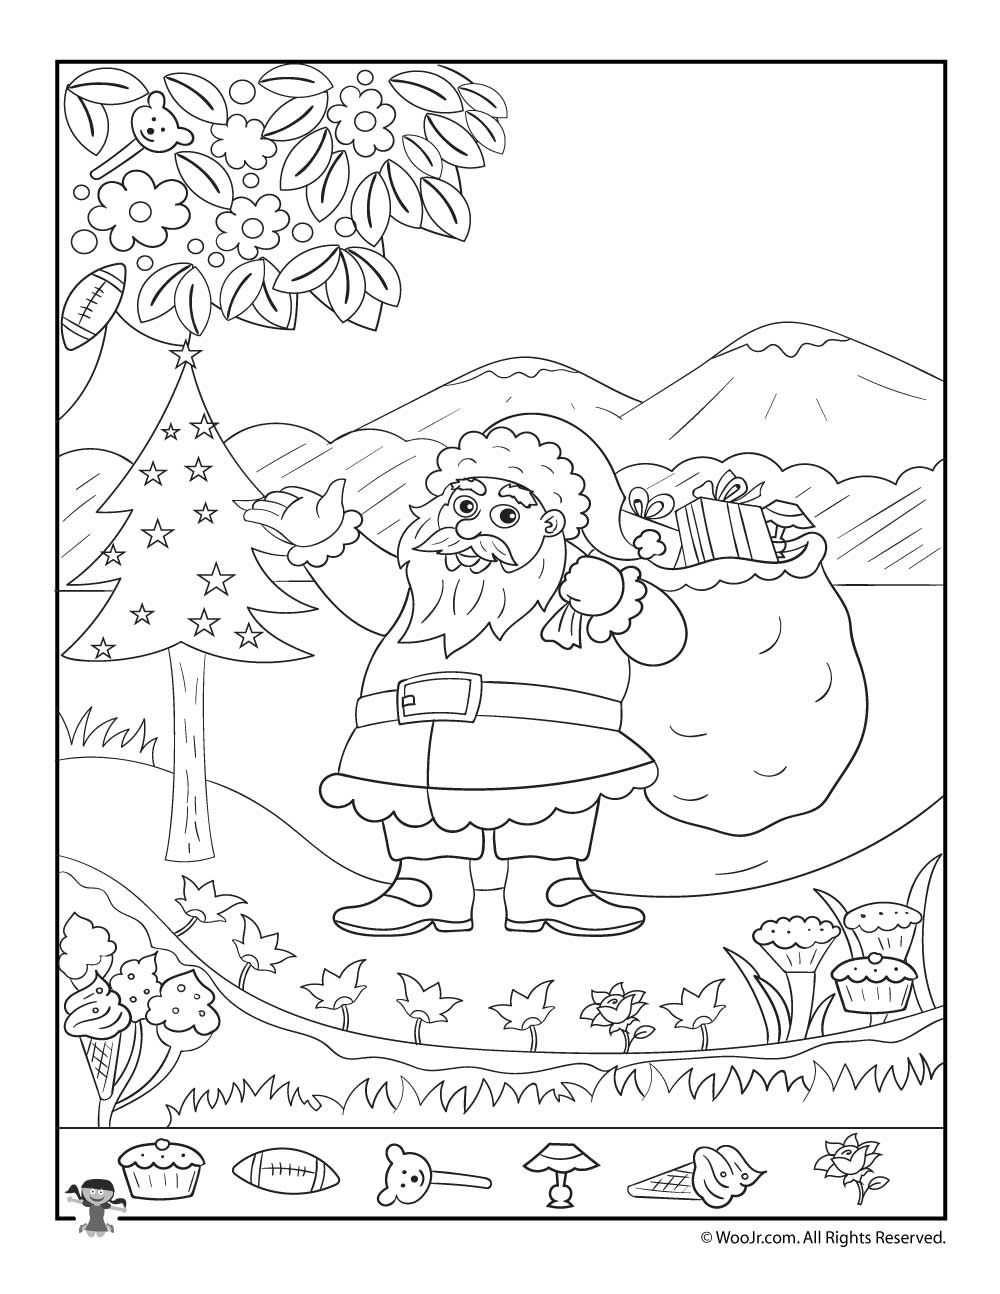 Santa Claus Christmas Hidden Picture Printable Page   Woo